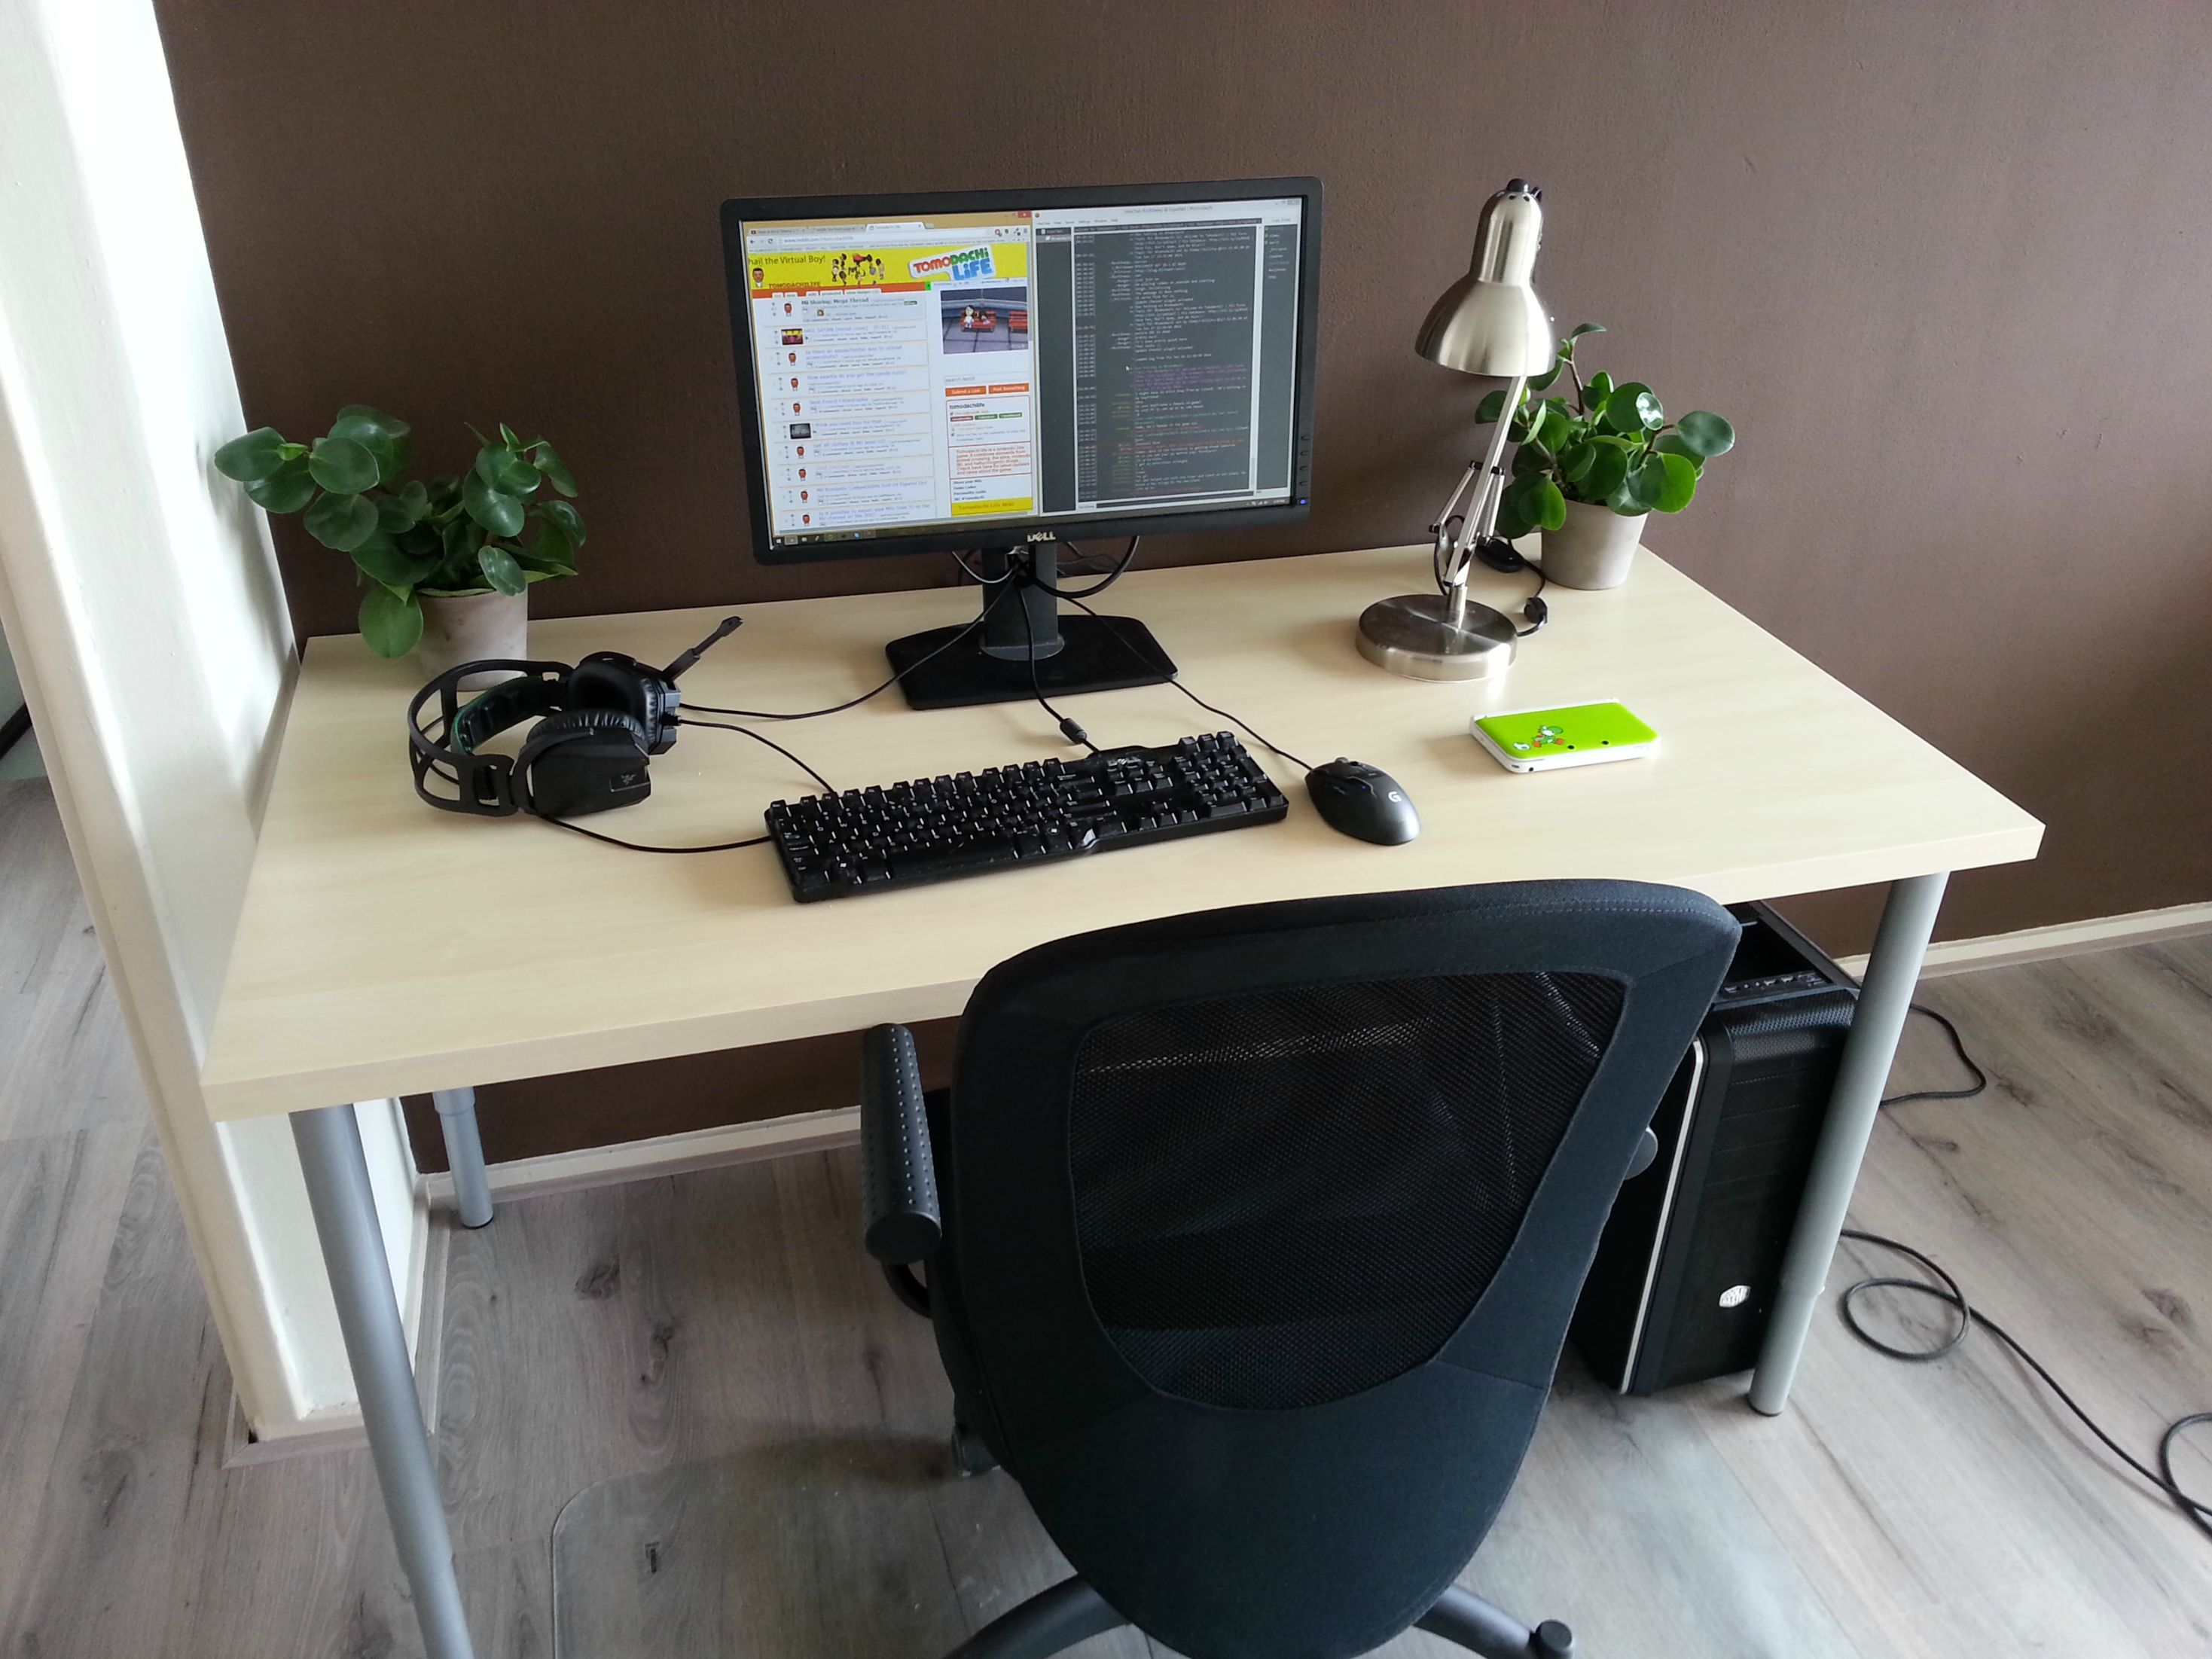 I Like The L Desk And The Clean, Minimal Style -